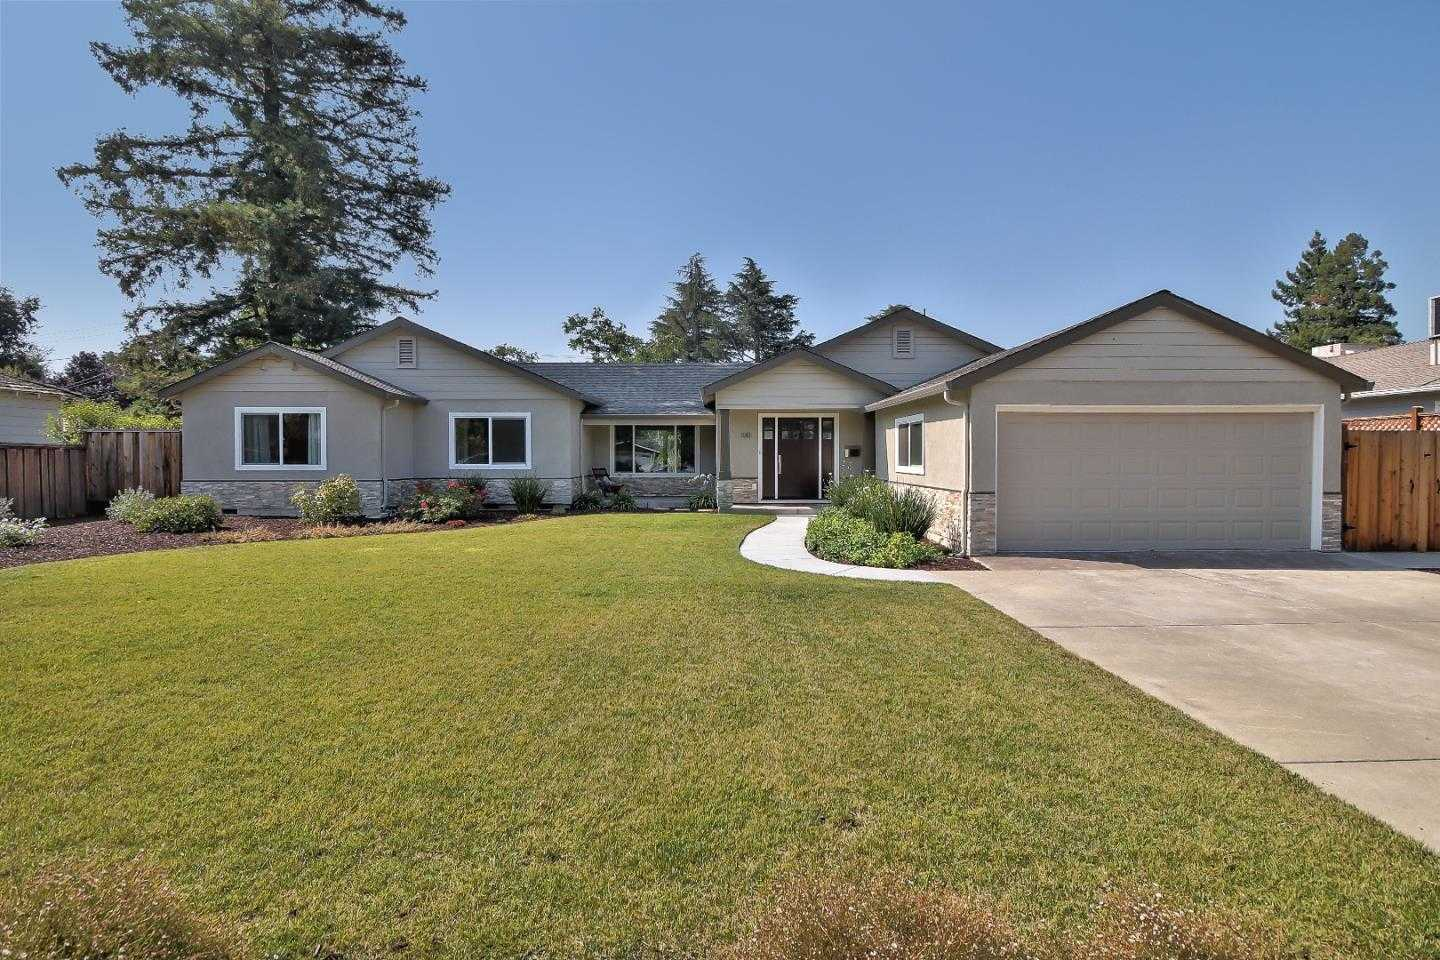 $1,799,000 - 4Br/3Ba -  for Sale in Campbell